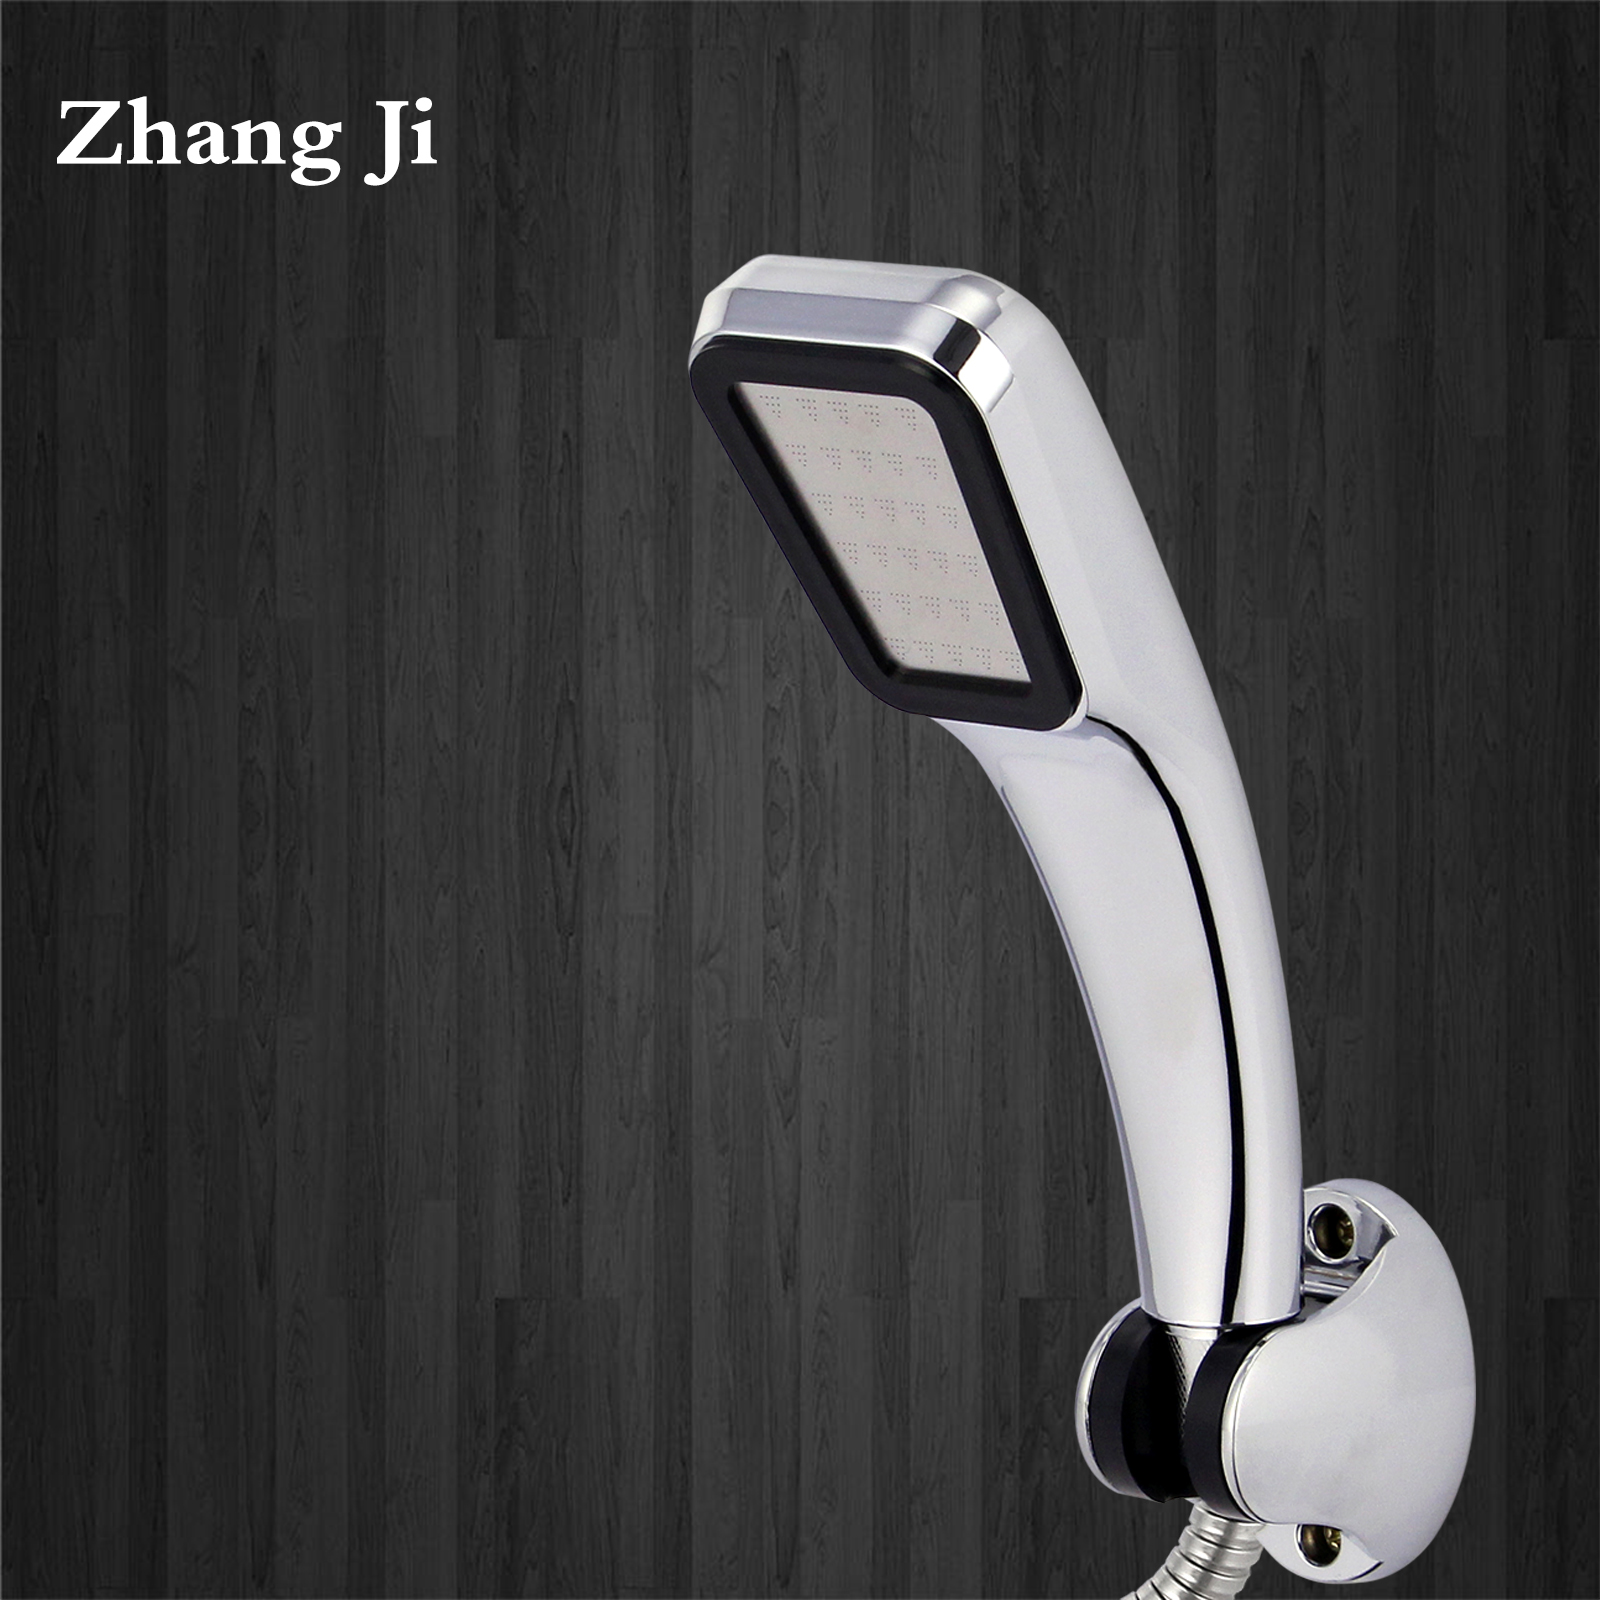 ZhangJi Hot Sale 300 Hole Shower Head Water Saving Flow With Chrome ABS Rain High Pressure Nozzle +1 pc big bath ball sponge